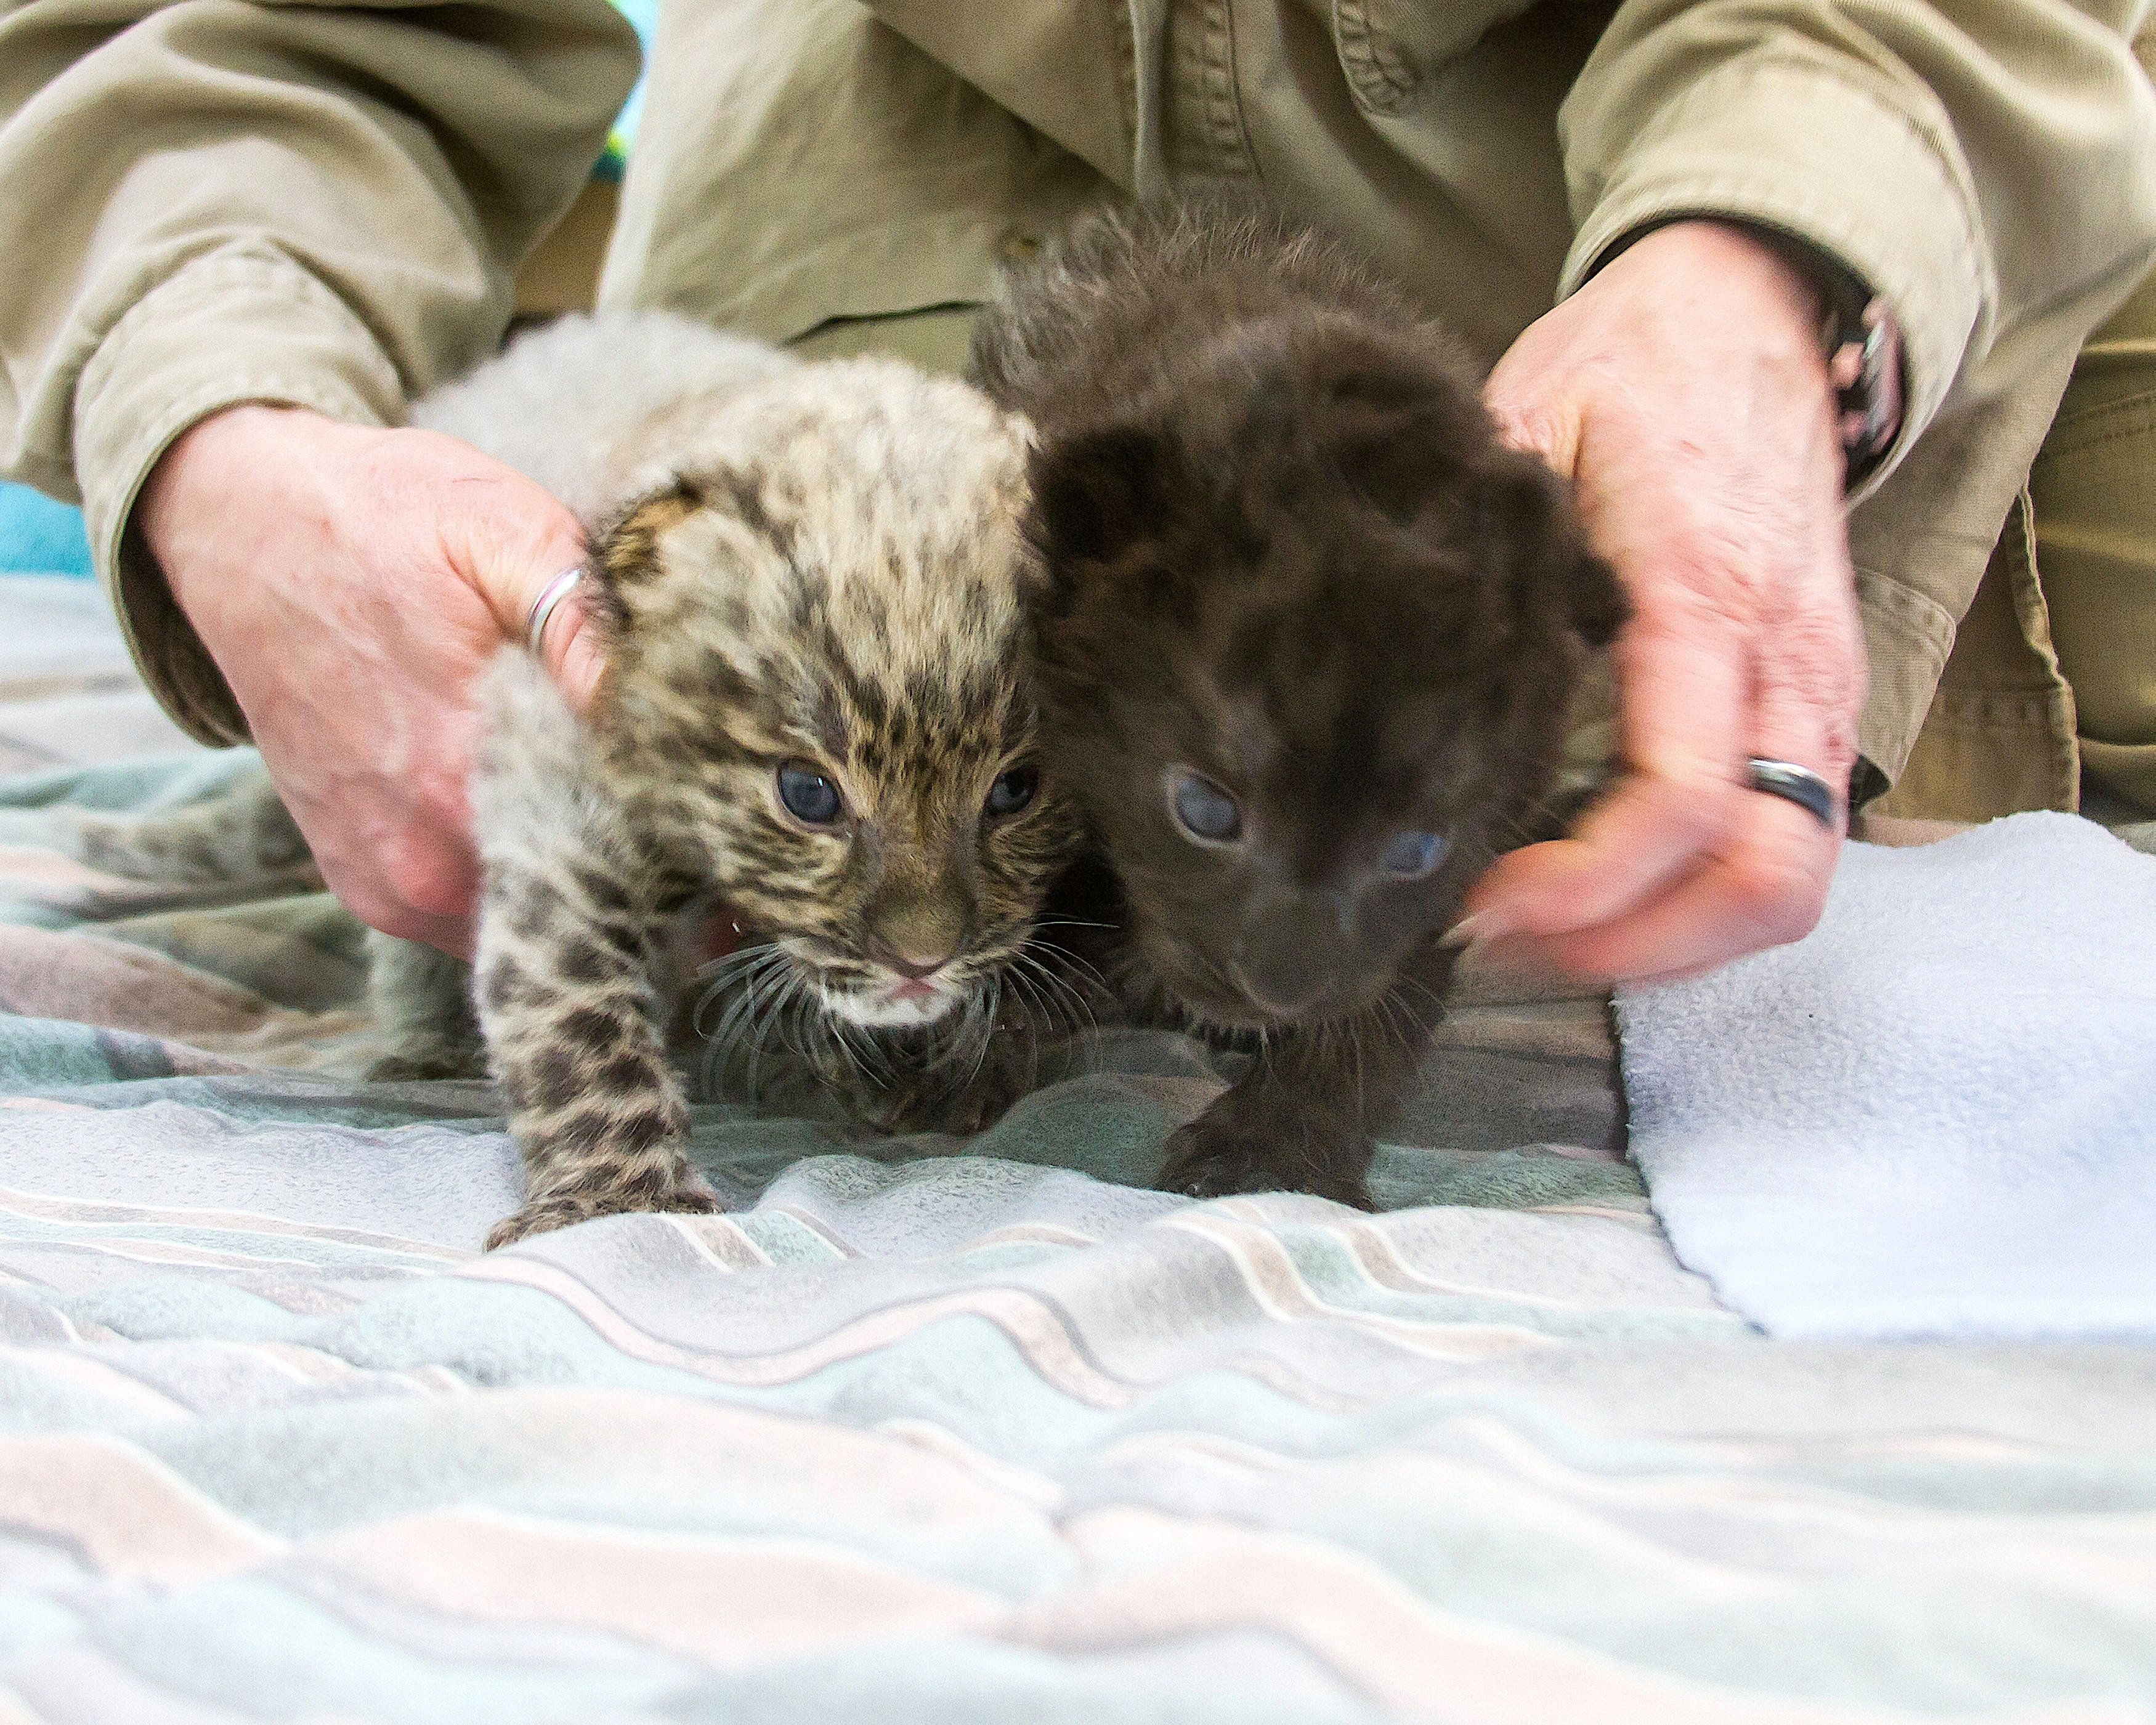 Two rare Amur leopard cubs born on Jan. 25, 2019, at Connecticut's Beardsley Zoo are seen at the Beardsley Zoo, located in Bridgeport, Connecticut on Feb. 14, 2019.